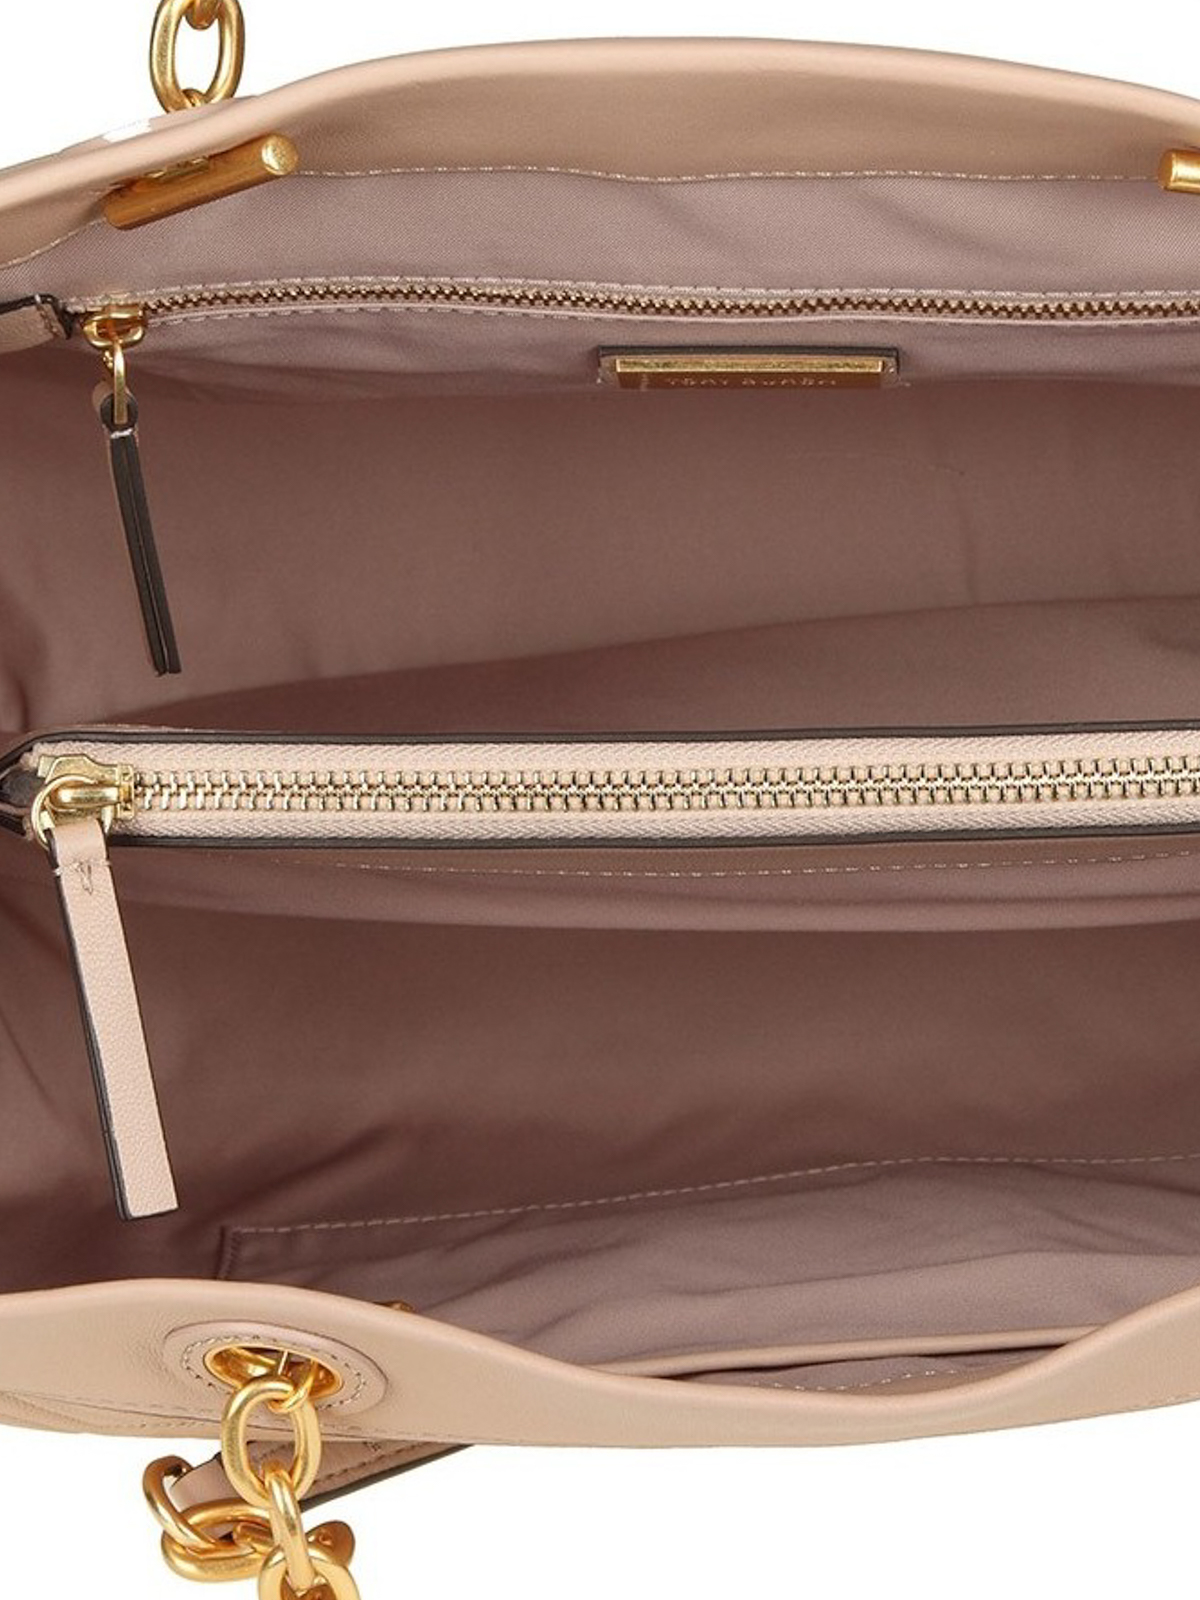 e0392bfc3490 Tory Burch - Fleming Triple-Compartment leather Tote - totes bags ...